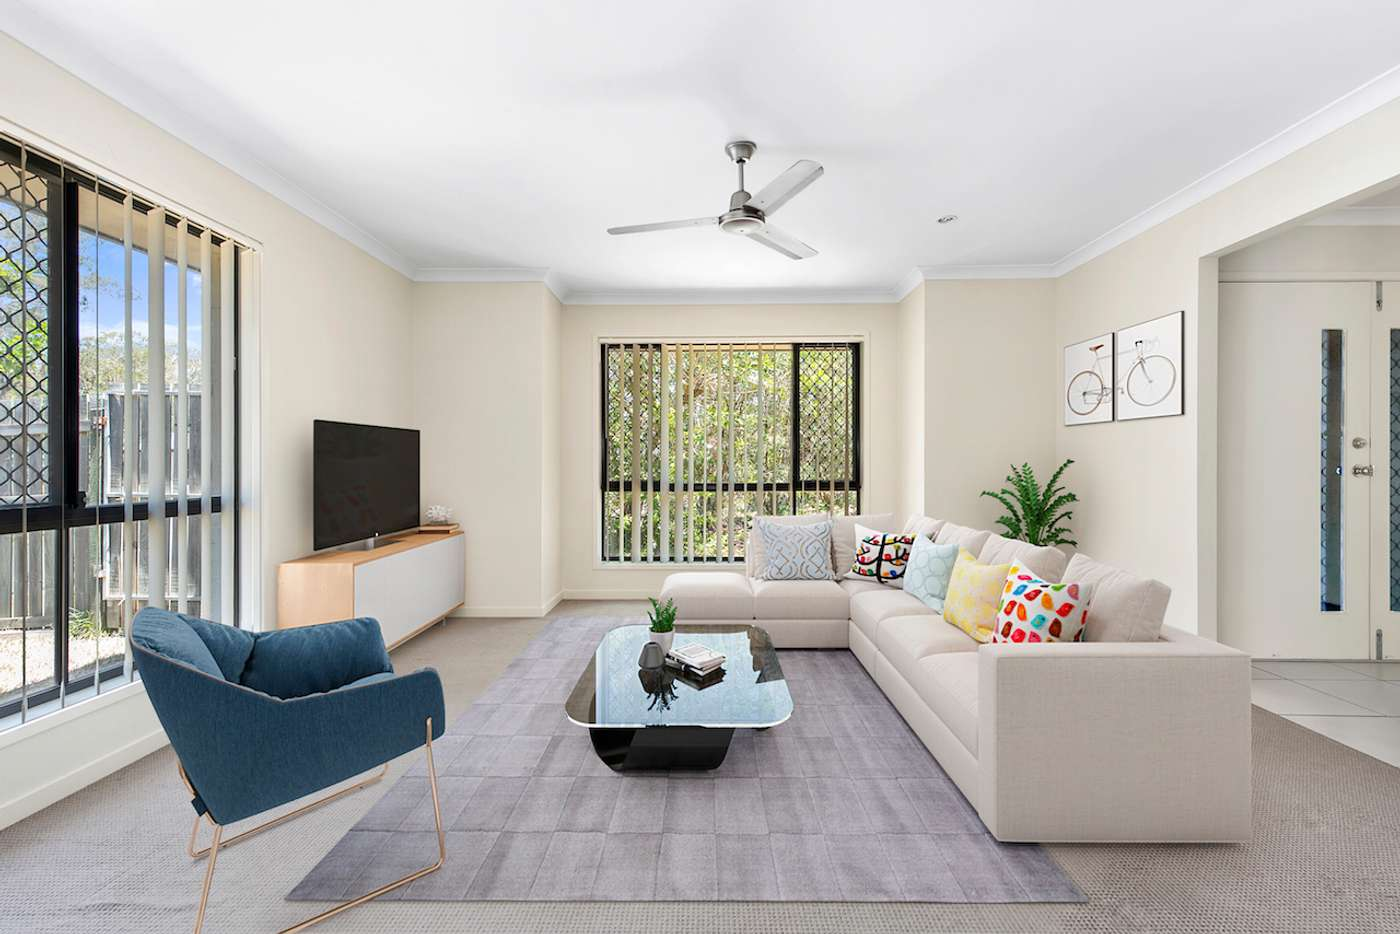 Fifth view of Homely house listing, 40 Grandview Parade, Griffin QLD 4503